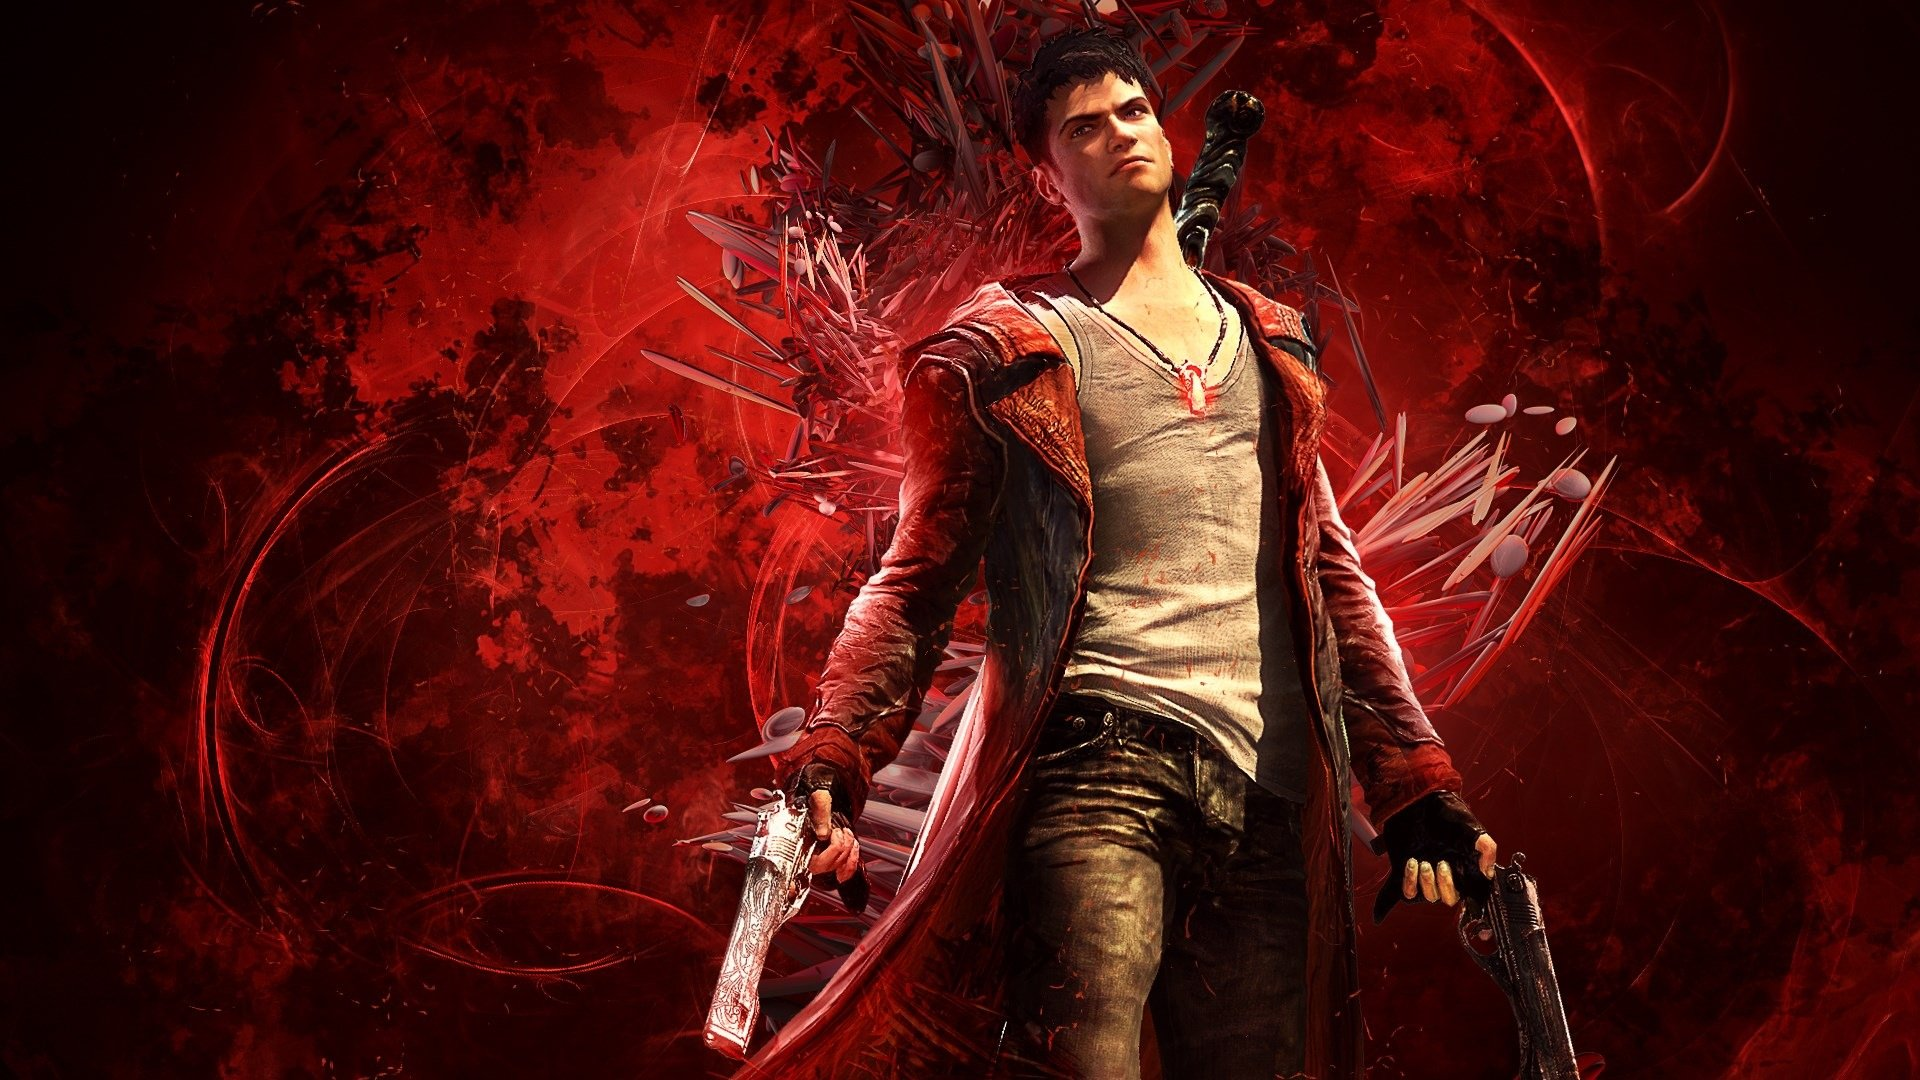 Devil May Cry Game HD Wallpaper High Definition HD Games Wallpaper 1920x1080